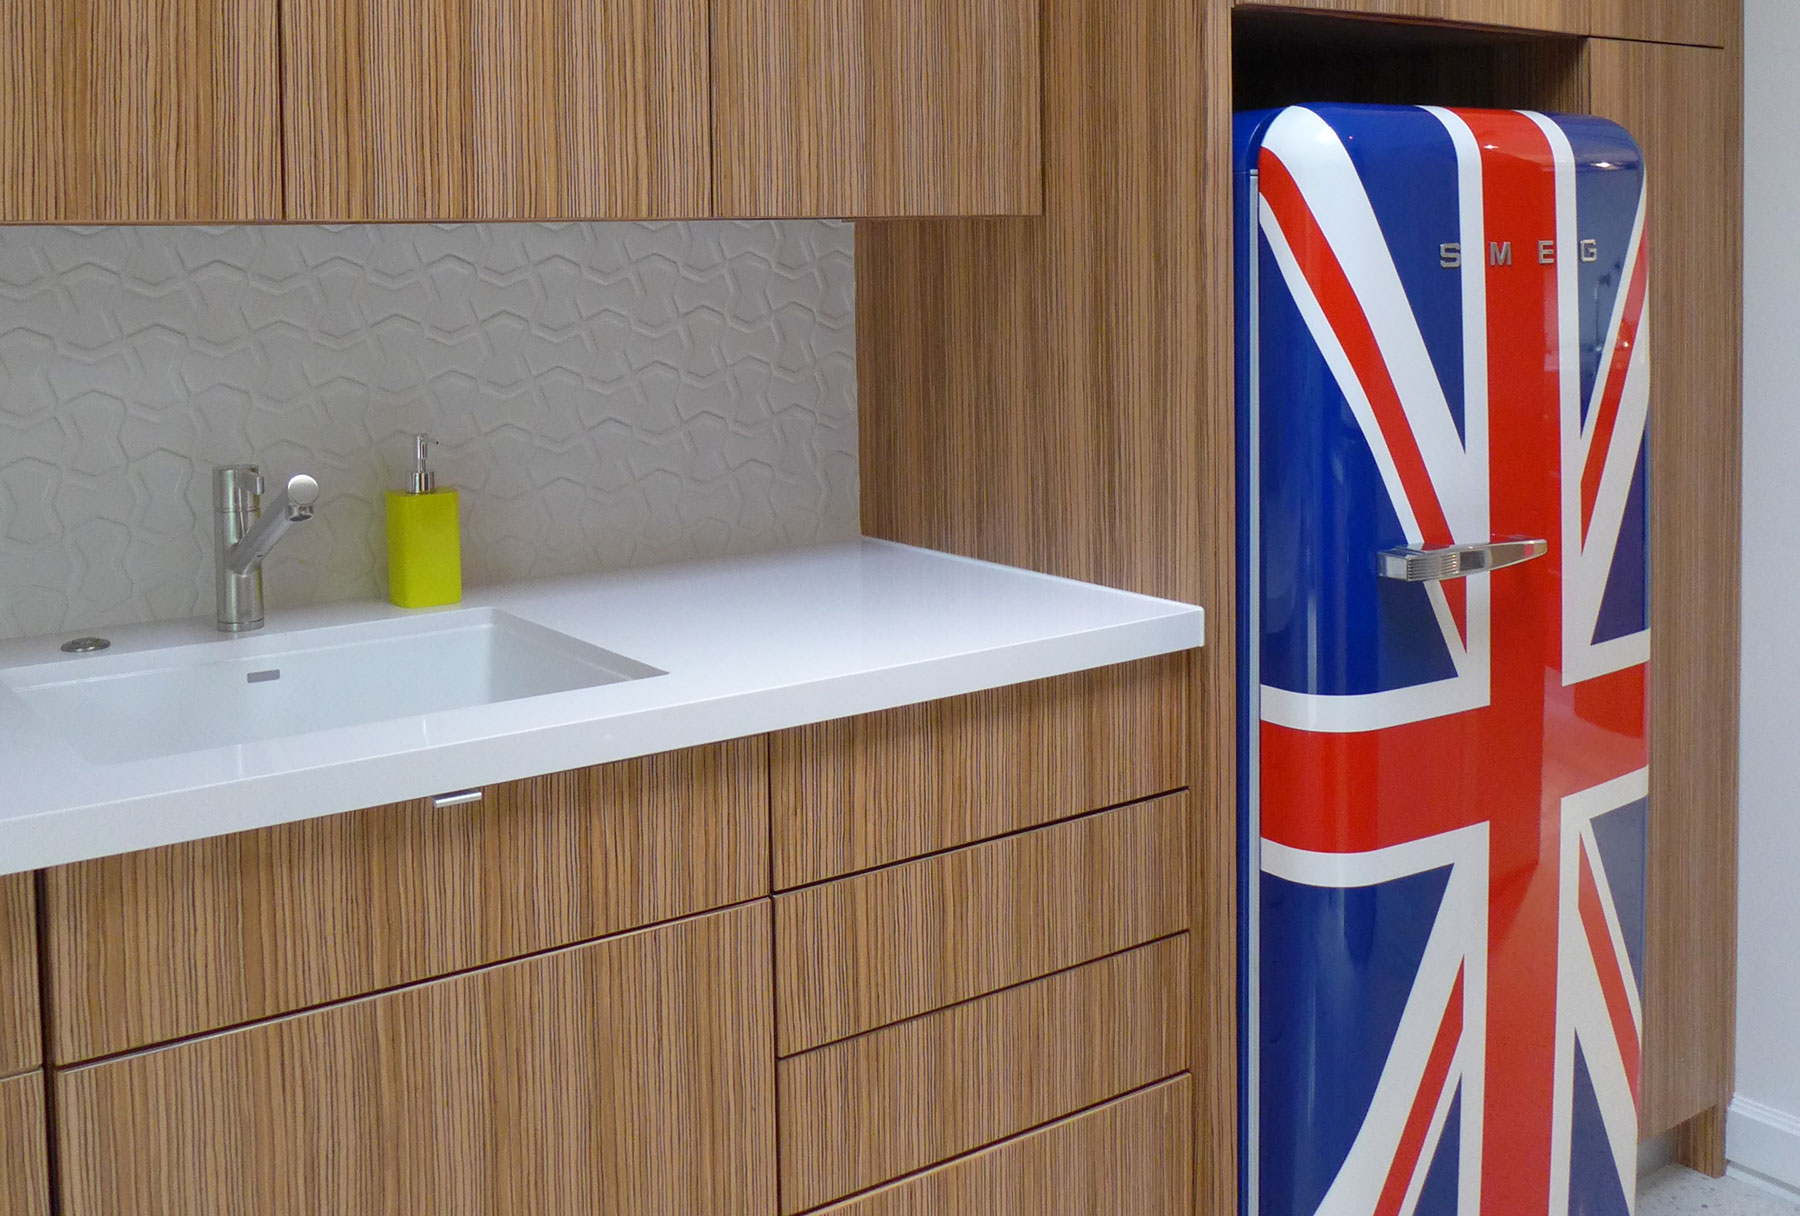 Smeg Refrigerator in Project Design | Bentwood of Houston